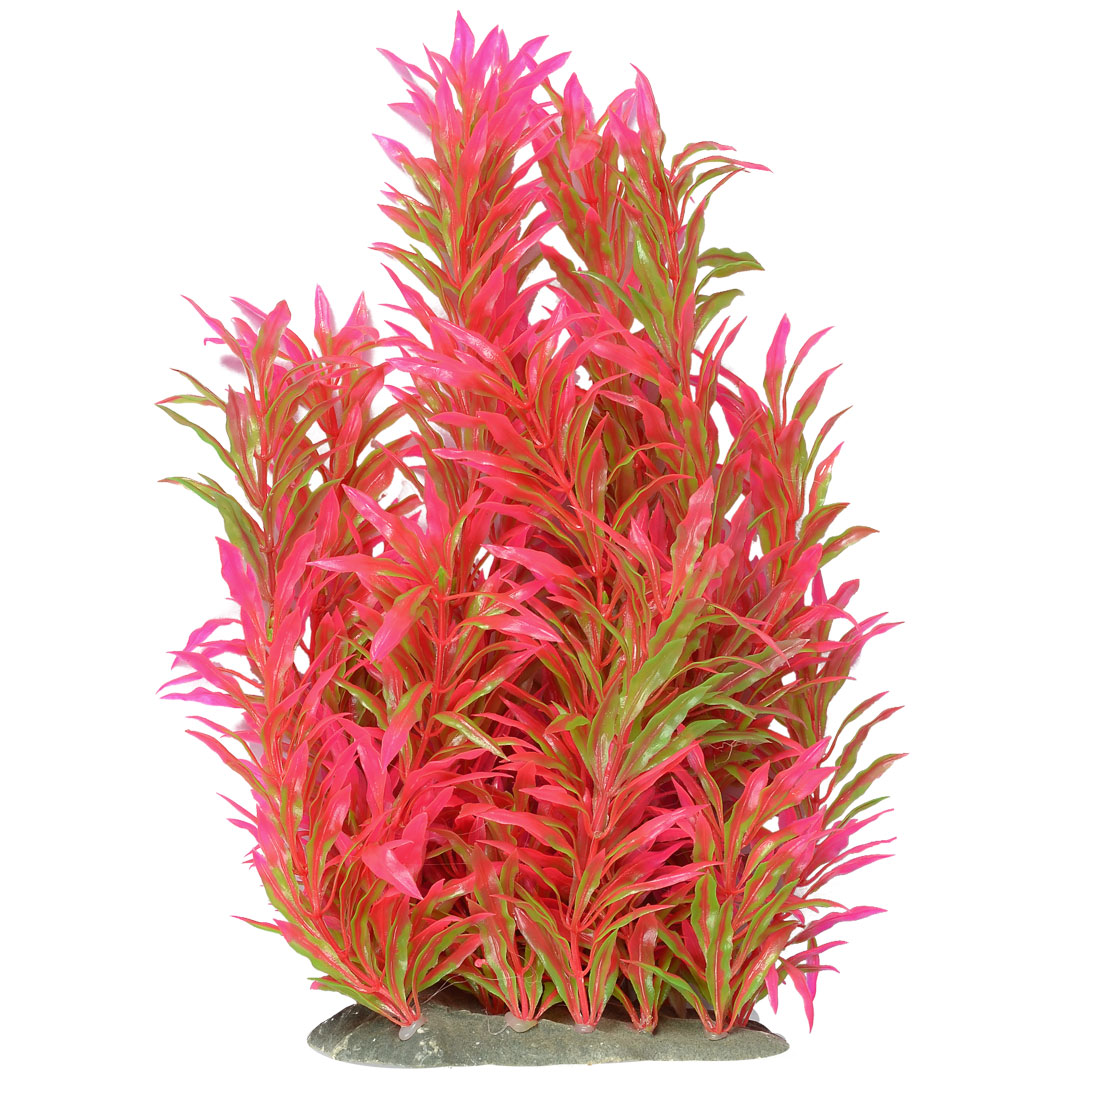 "Aquariums Hot Pink Green Linear Leaves Simulation Strip Plant Decor 11"" Height"